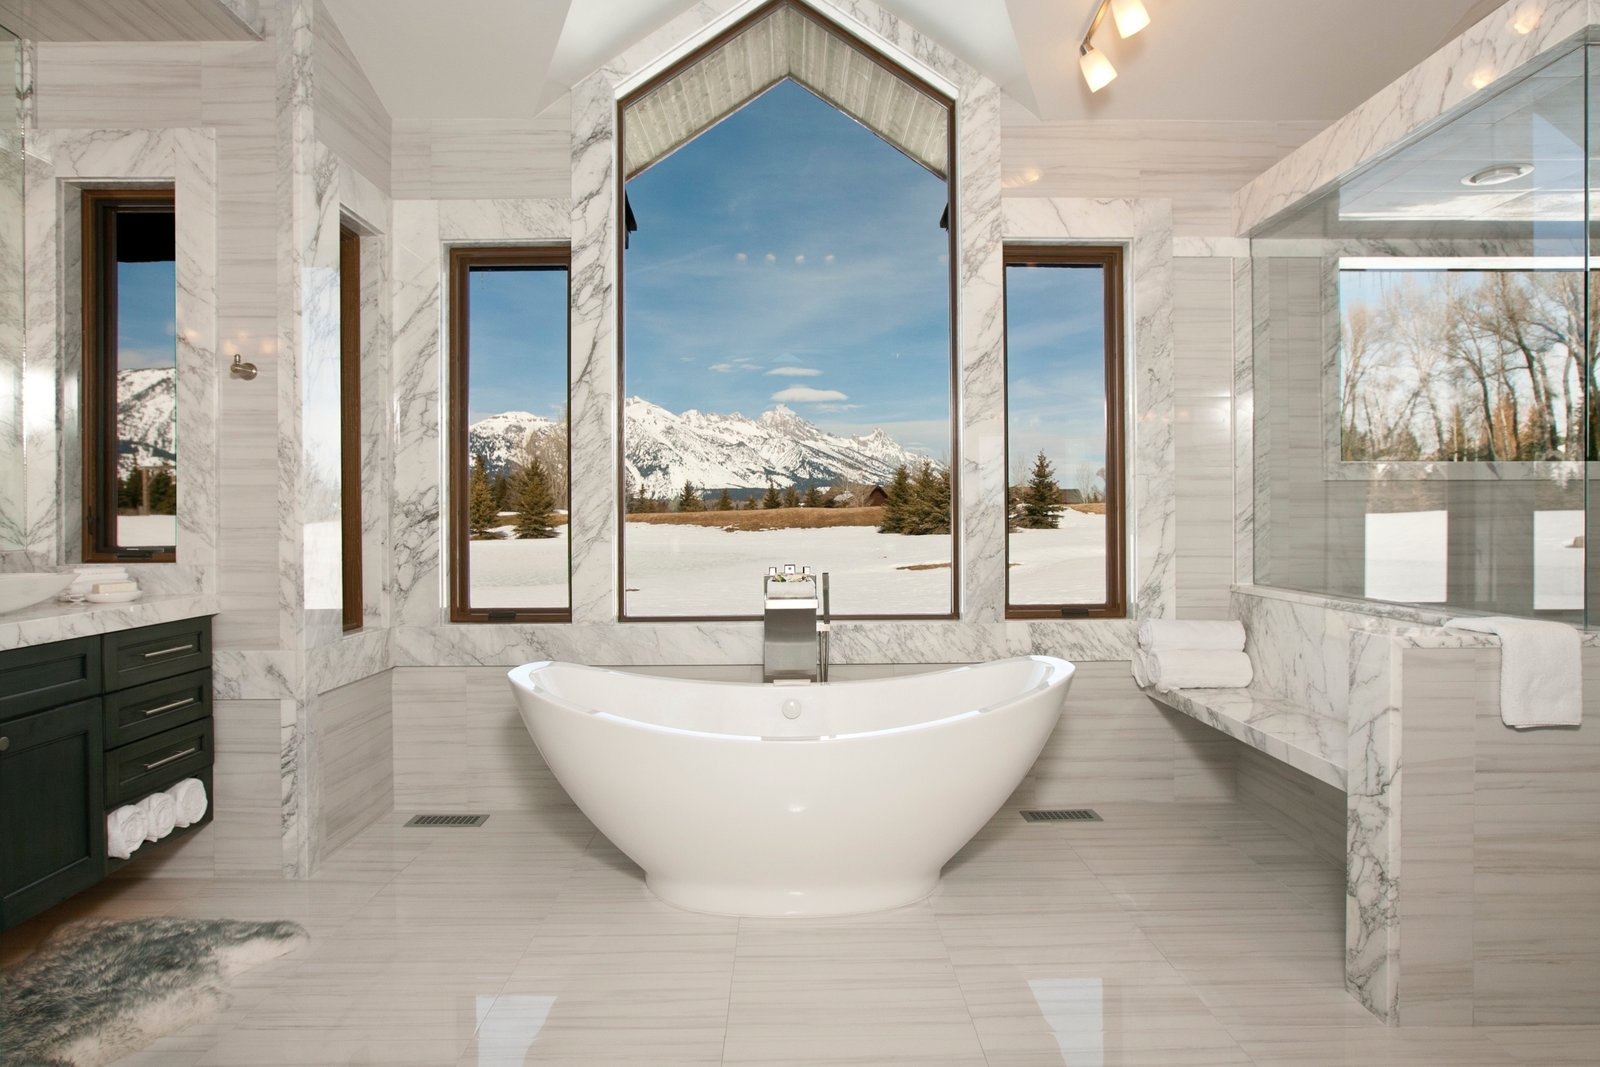 Making our way to Jackson Hole, Wyoming, this master suite bathroom is nestled within a mountain retreat that sits on five acres of private land. Slabs of Carrera marble line the space while the central window overlooks the Grand Teton national park. Placed at the edge of the bathroom is a 50-square-foot shower with steam capabilities.  Photo 17 of 22 in Bath & Spa Intrigue from One of These Ultra-Modern Bathrooms Could Be the Escape of Your Dreams